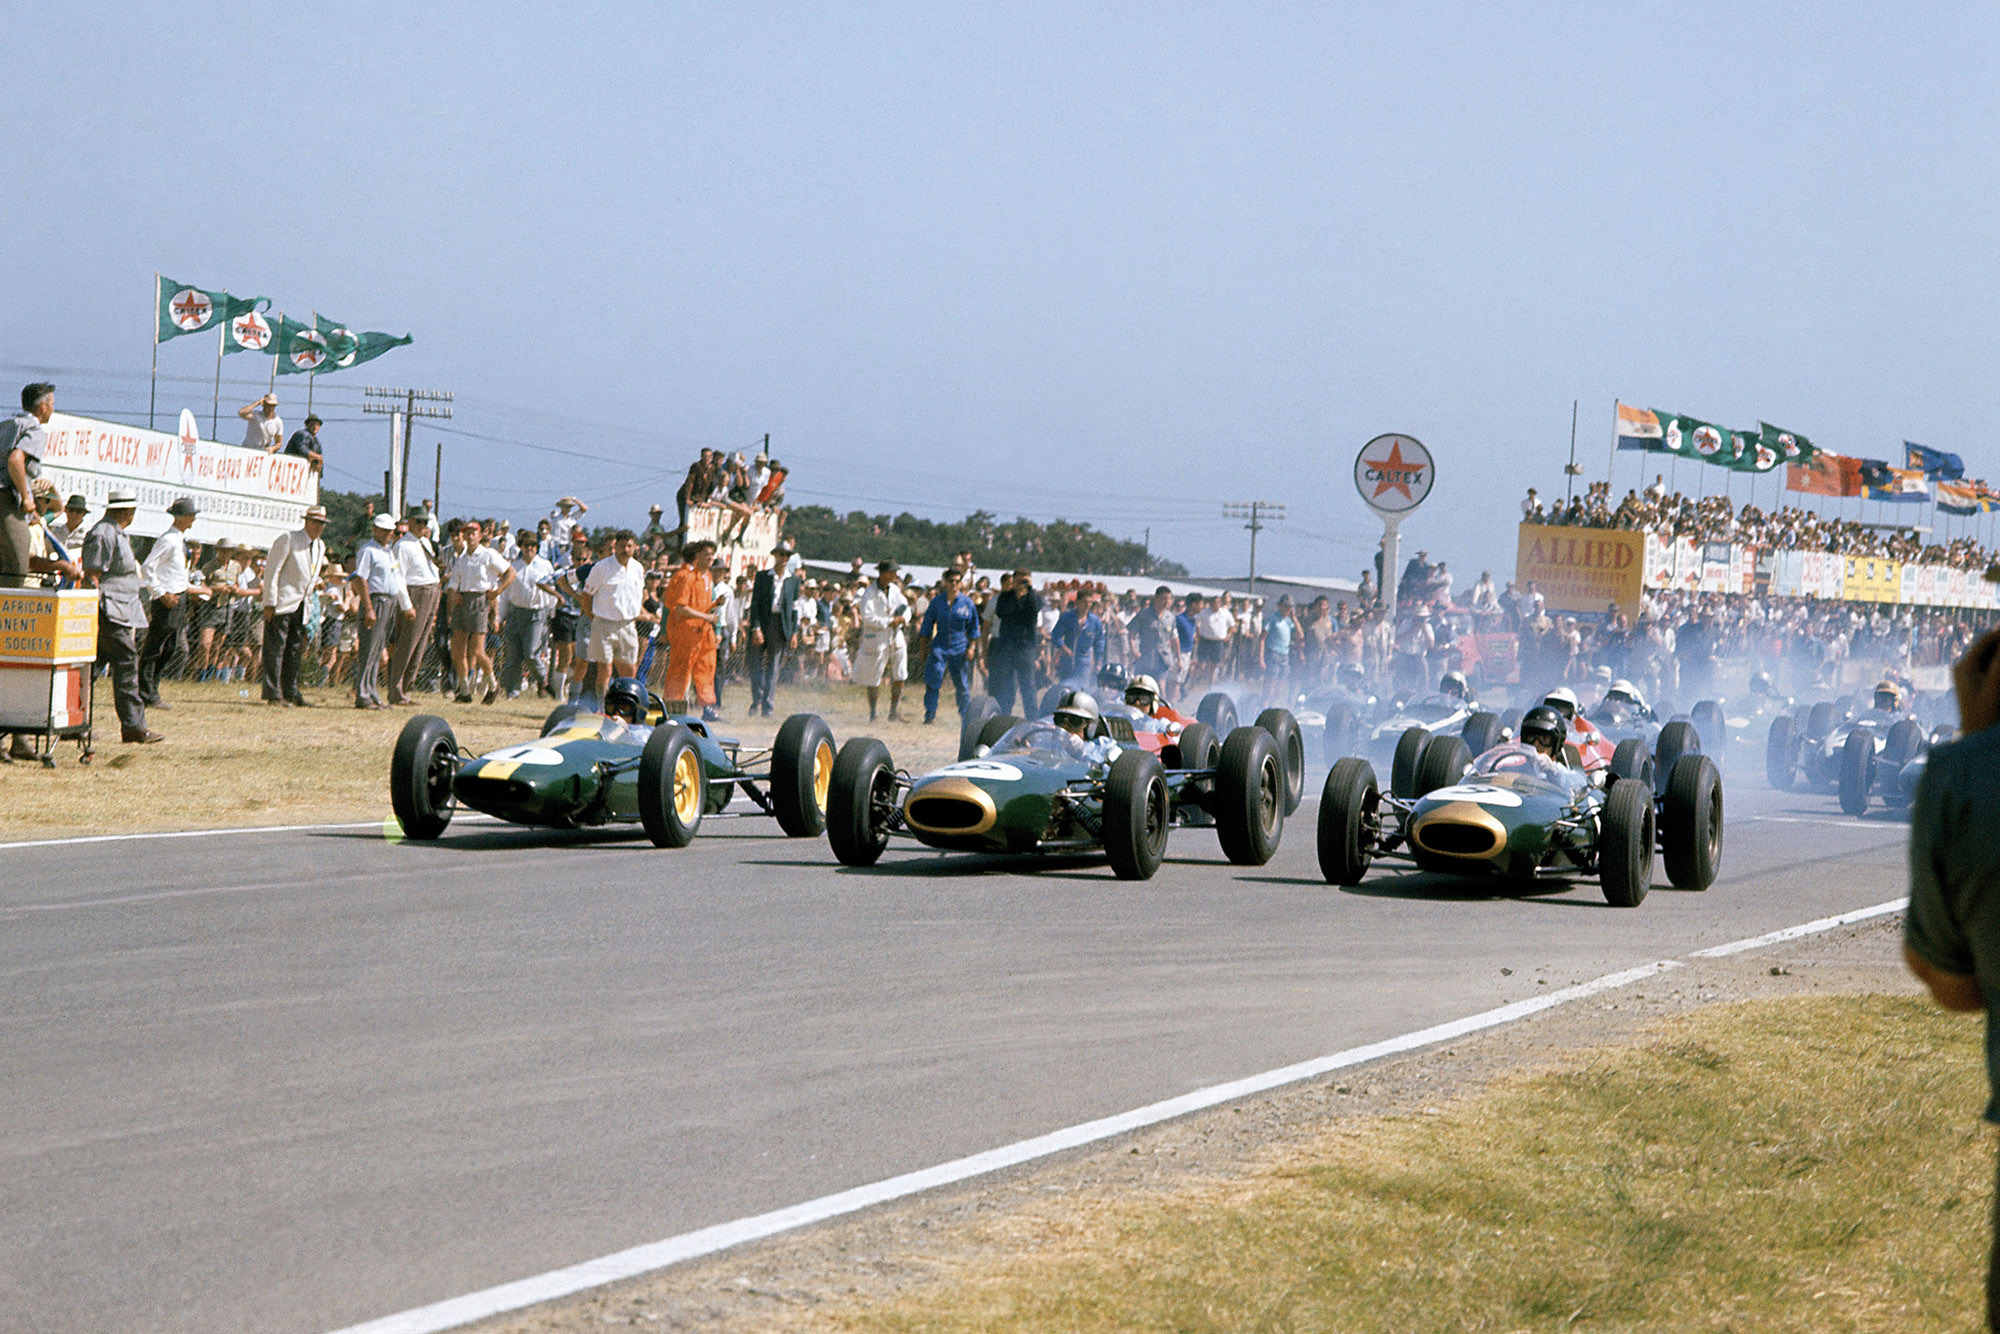 Jim Clark (Lotus 25-Climax), Jack Brabham (Brabham BT7-Climax) and Dan Gurney (Brabham BT7-Climax) lead off the front row of the grid at the start.